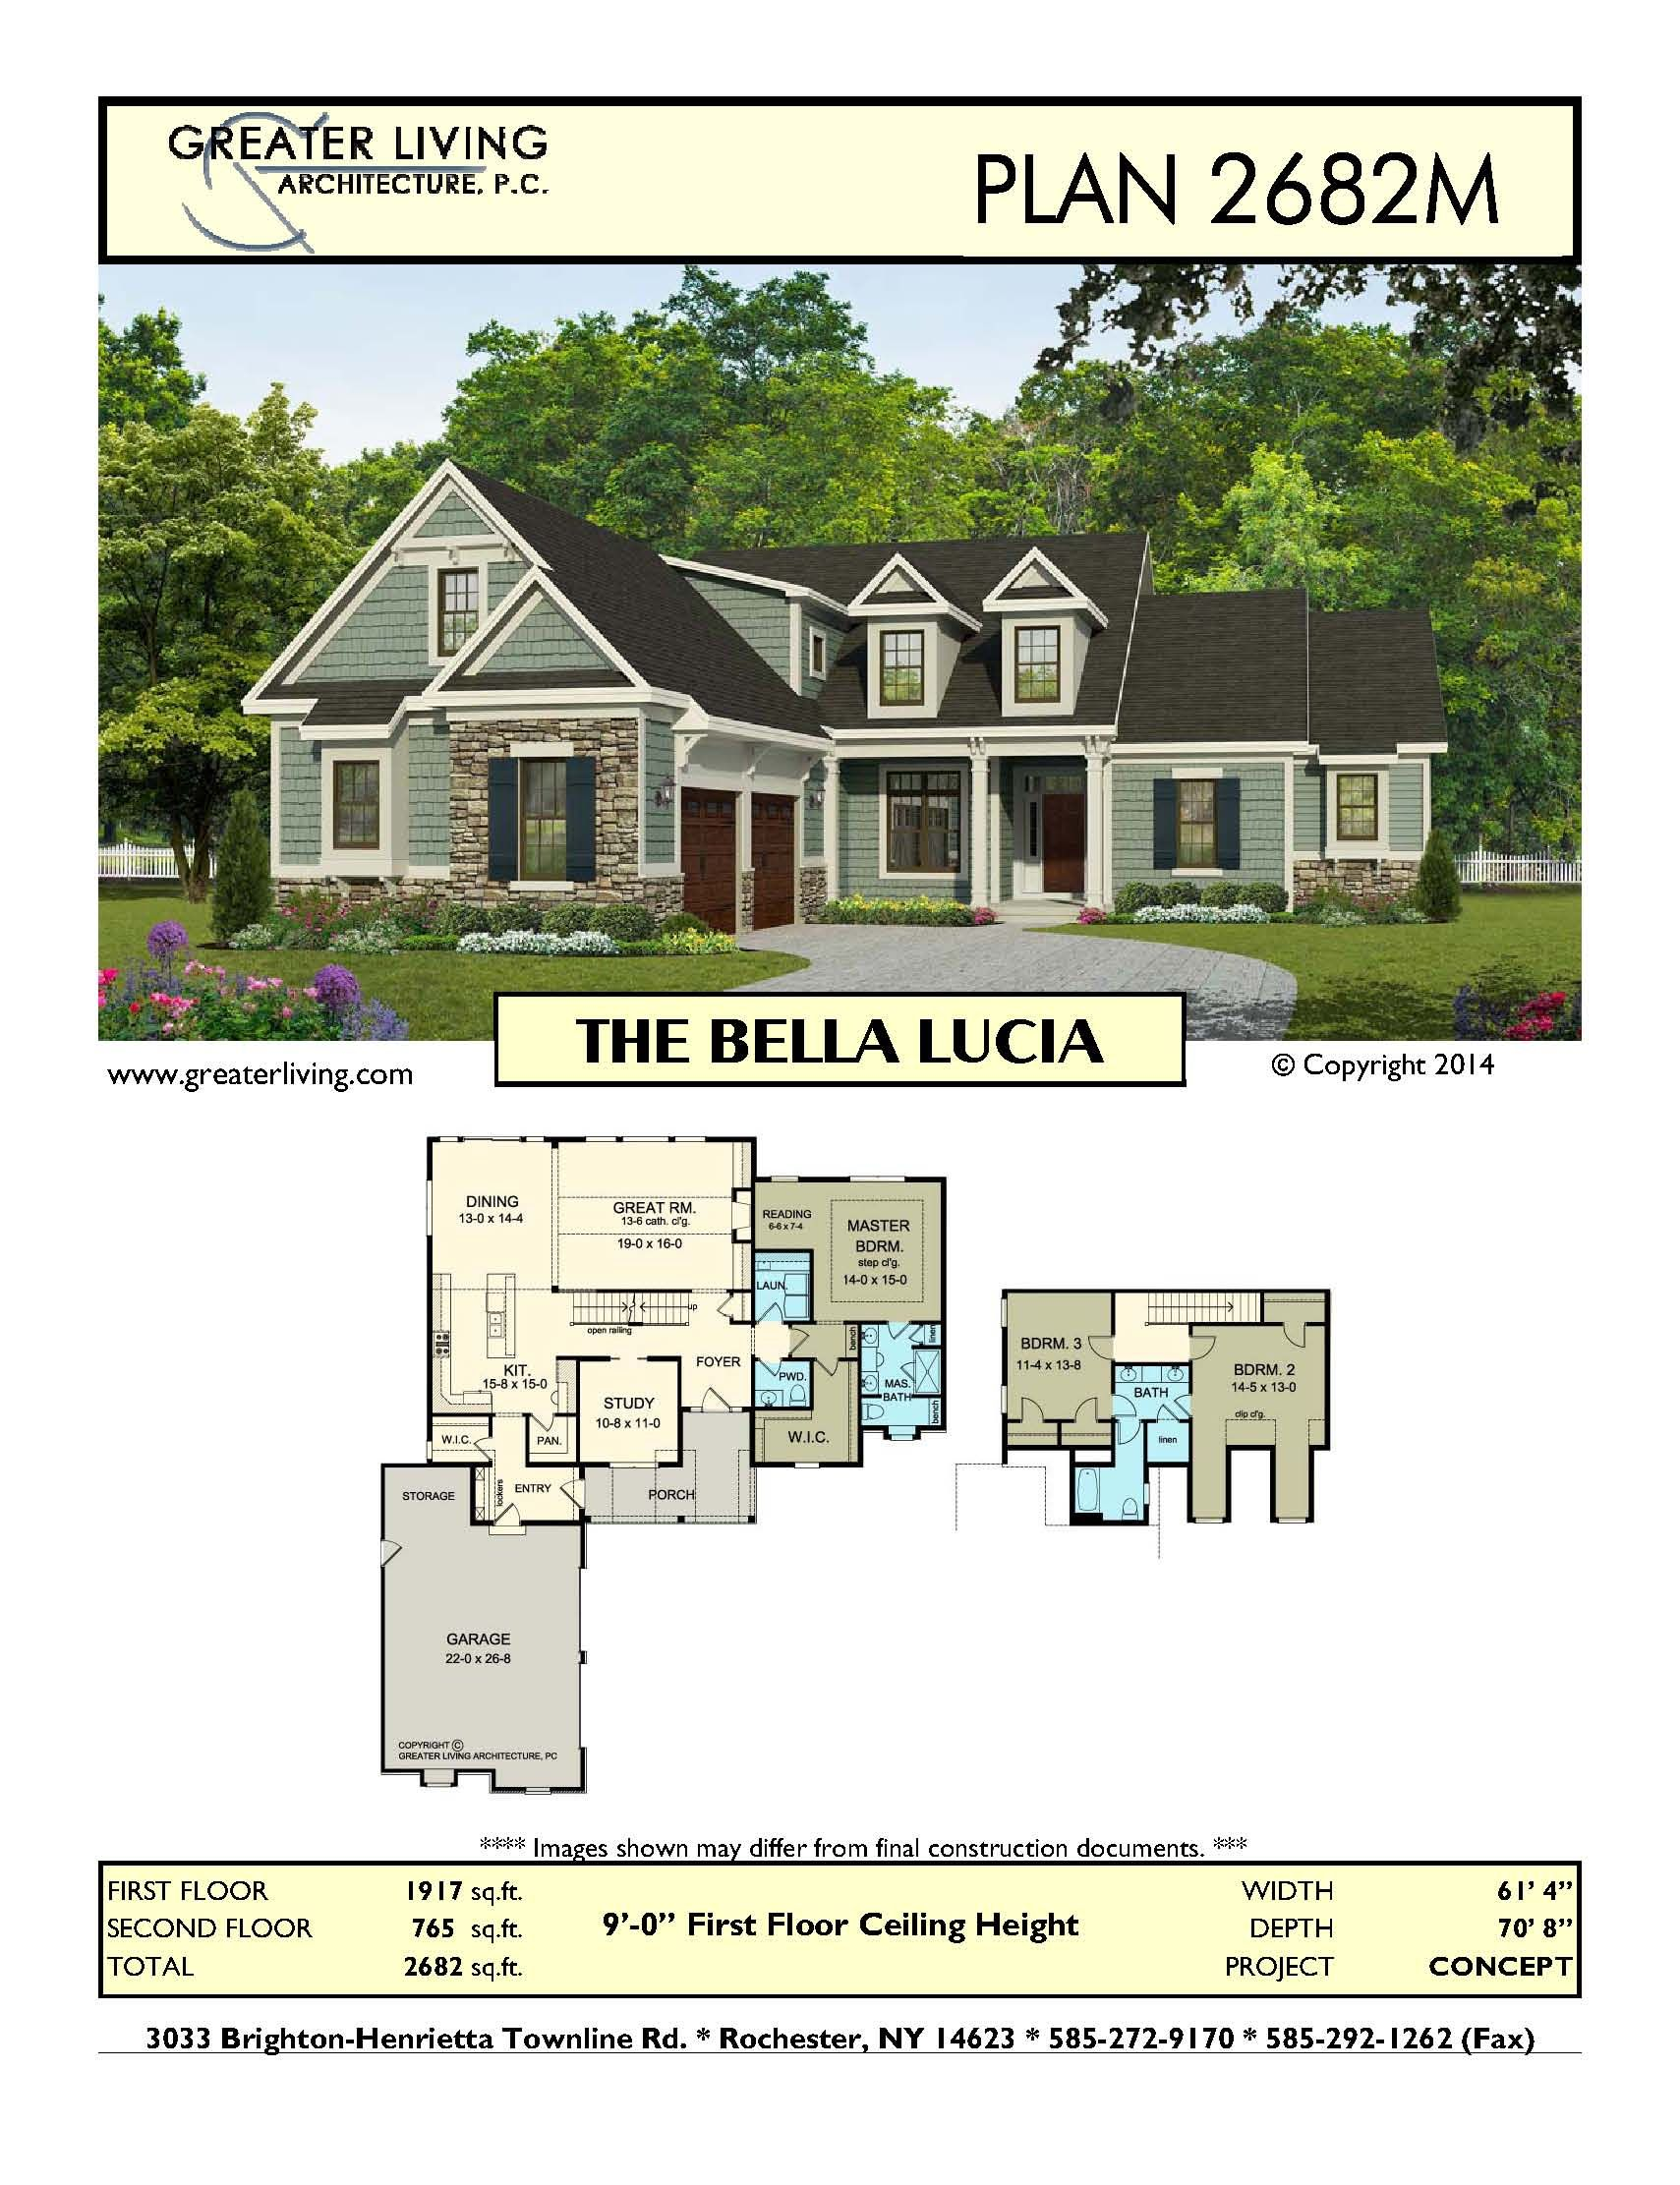 Plan 2682M THE BELLA LUCIA House Plans Two Story House Plans